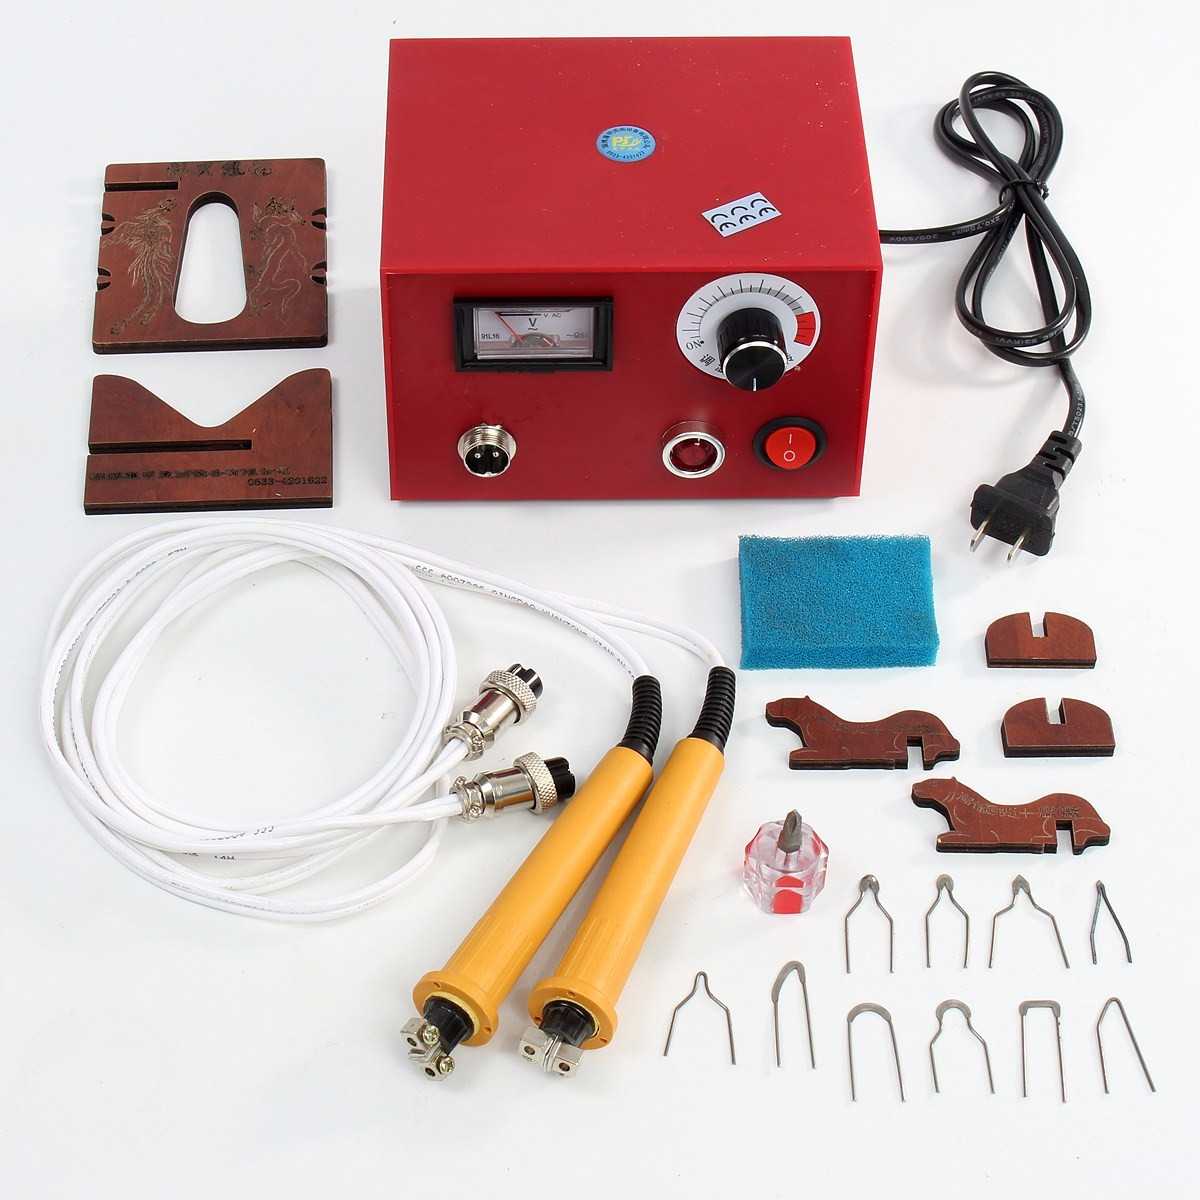 WOLIKE 220V Professional Multifunction Pyrography Machine Gourd Wood Pyrography Crafts Tool Kit Set Electrocautery Pen Machine